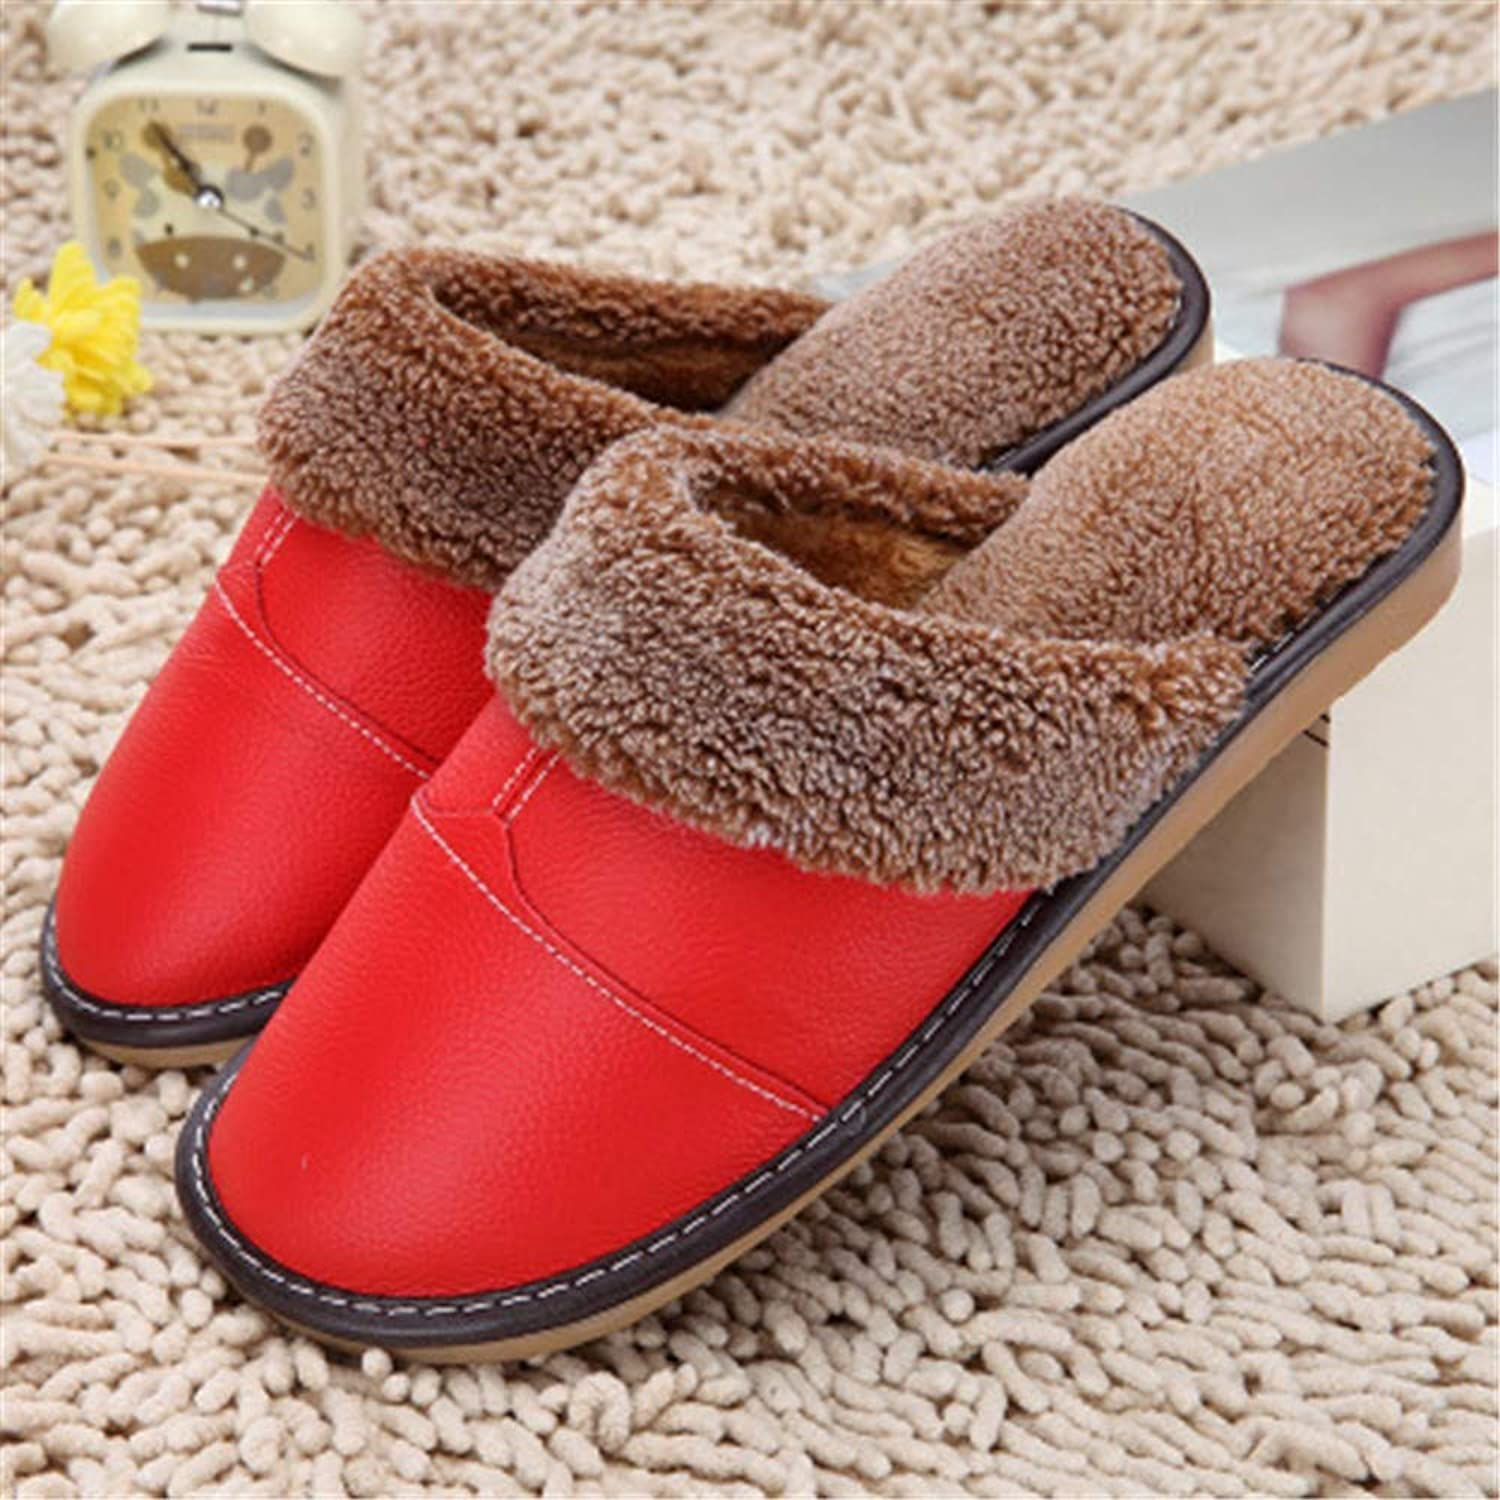 NIGHT WALL Comfortable Slip-on Winter Men's Cotton Slippers Winter Ladies Slip Leather slippersHouse shoes Indoor & Outdoor